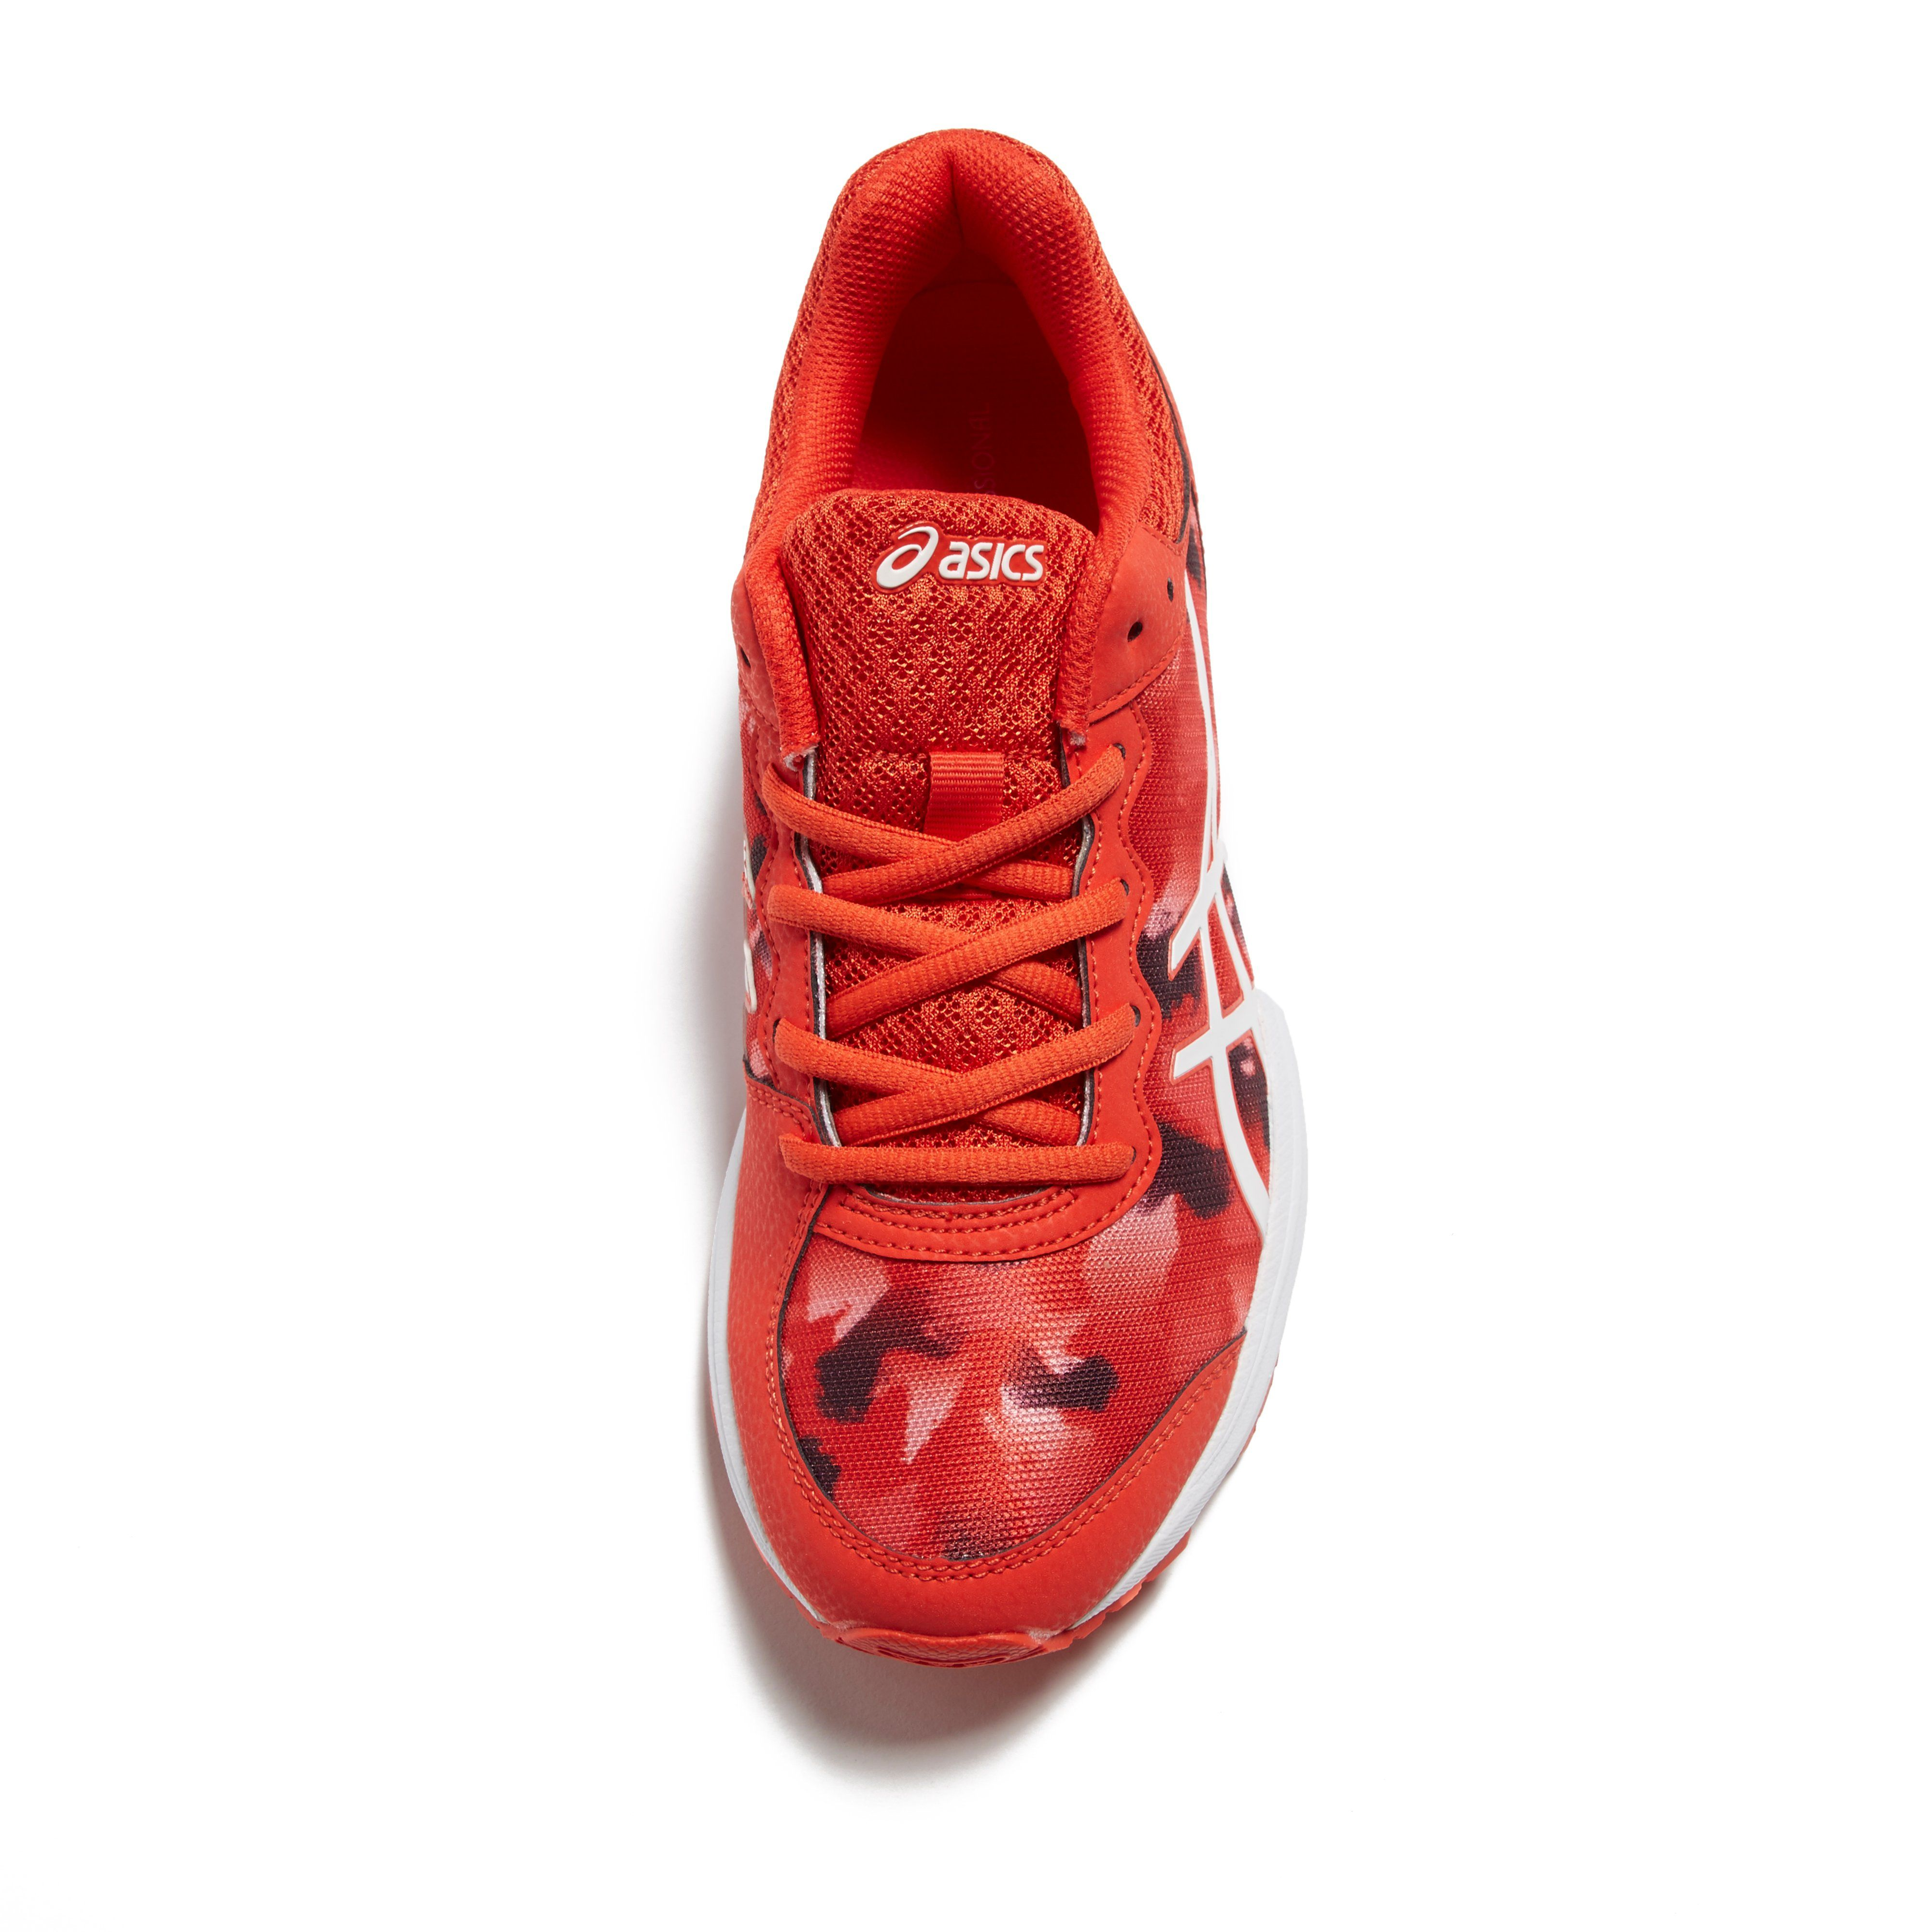 ASICS Netburner Professional GS Junior Netball Shoes